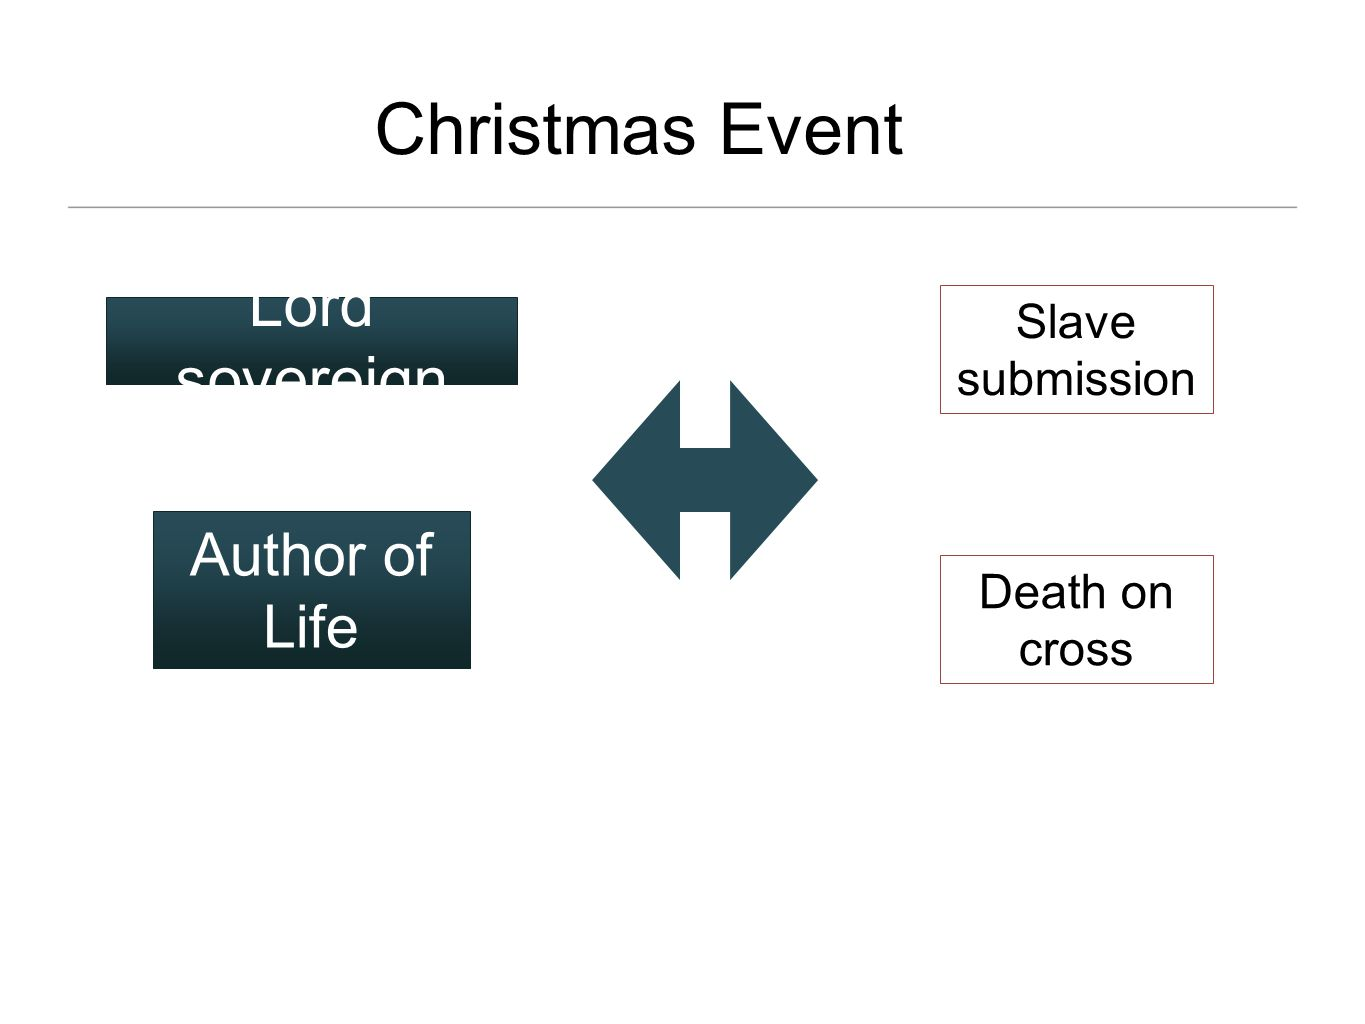 Christmas Event Lord sovereign Author of Life Slave submission